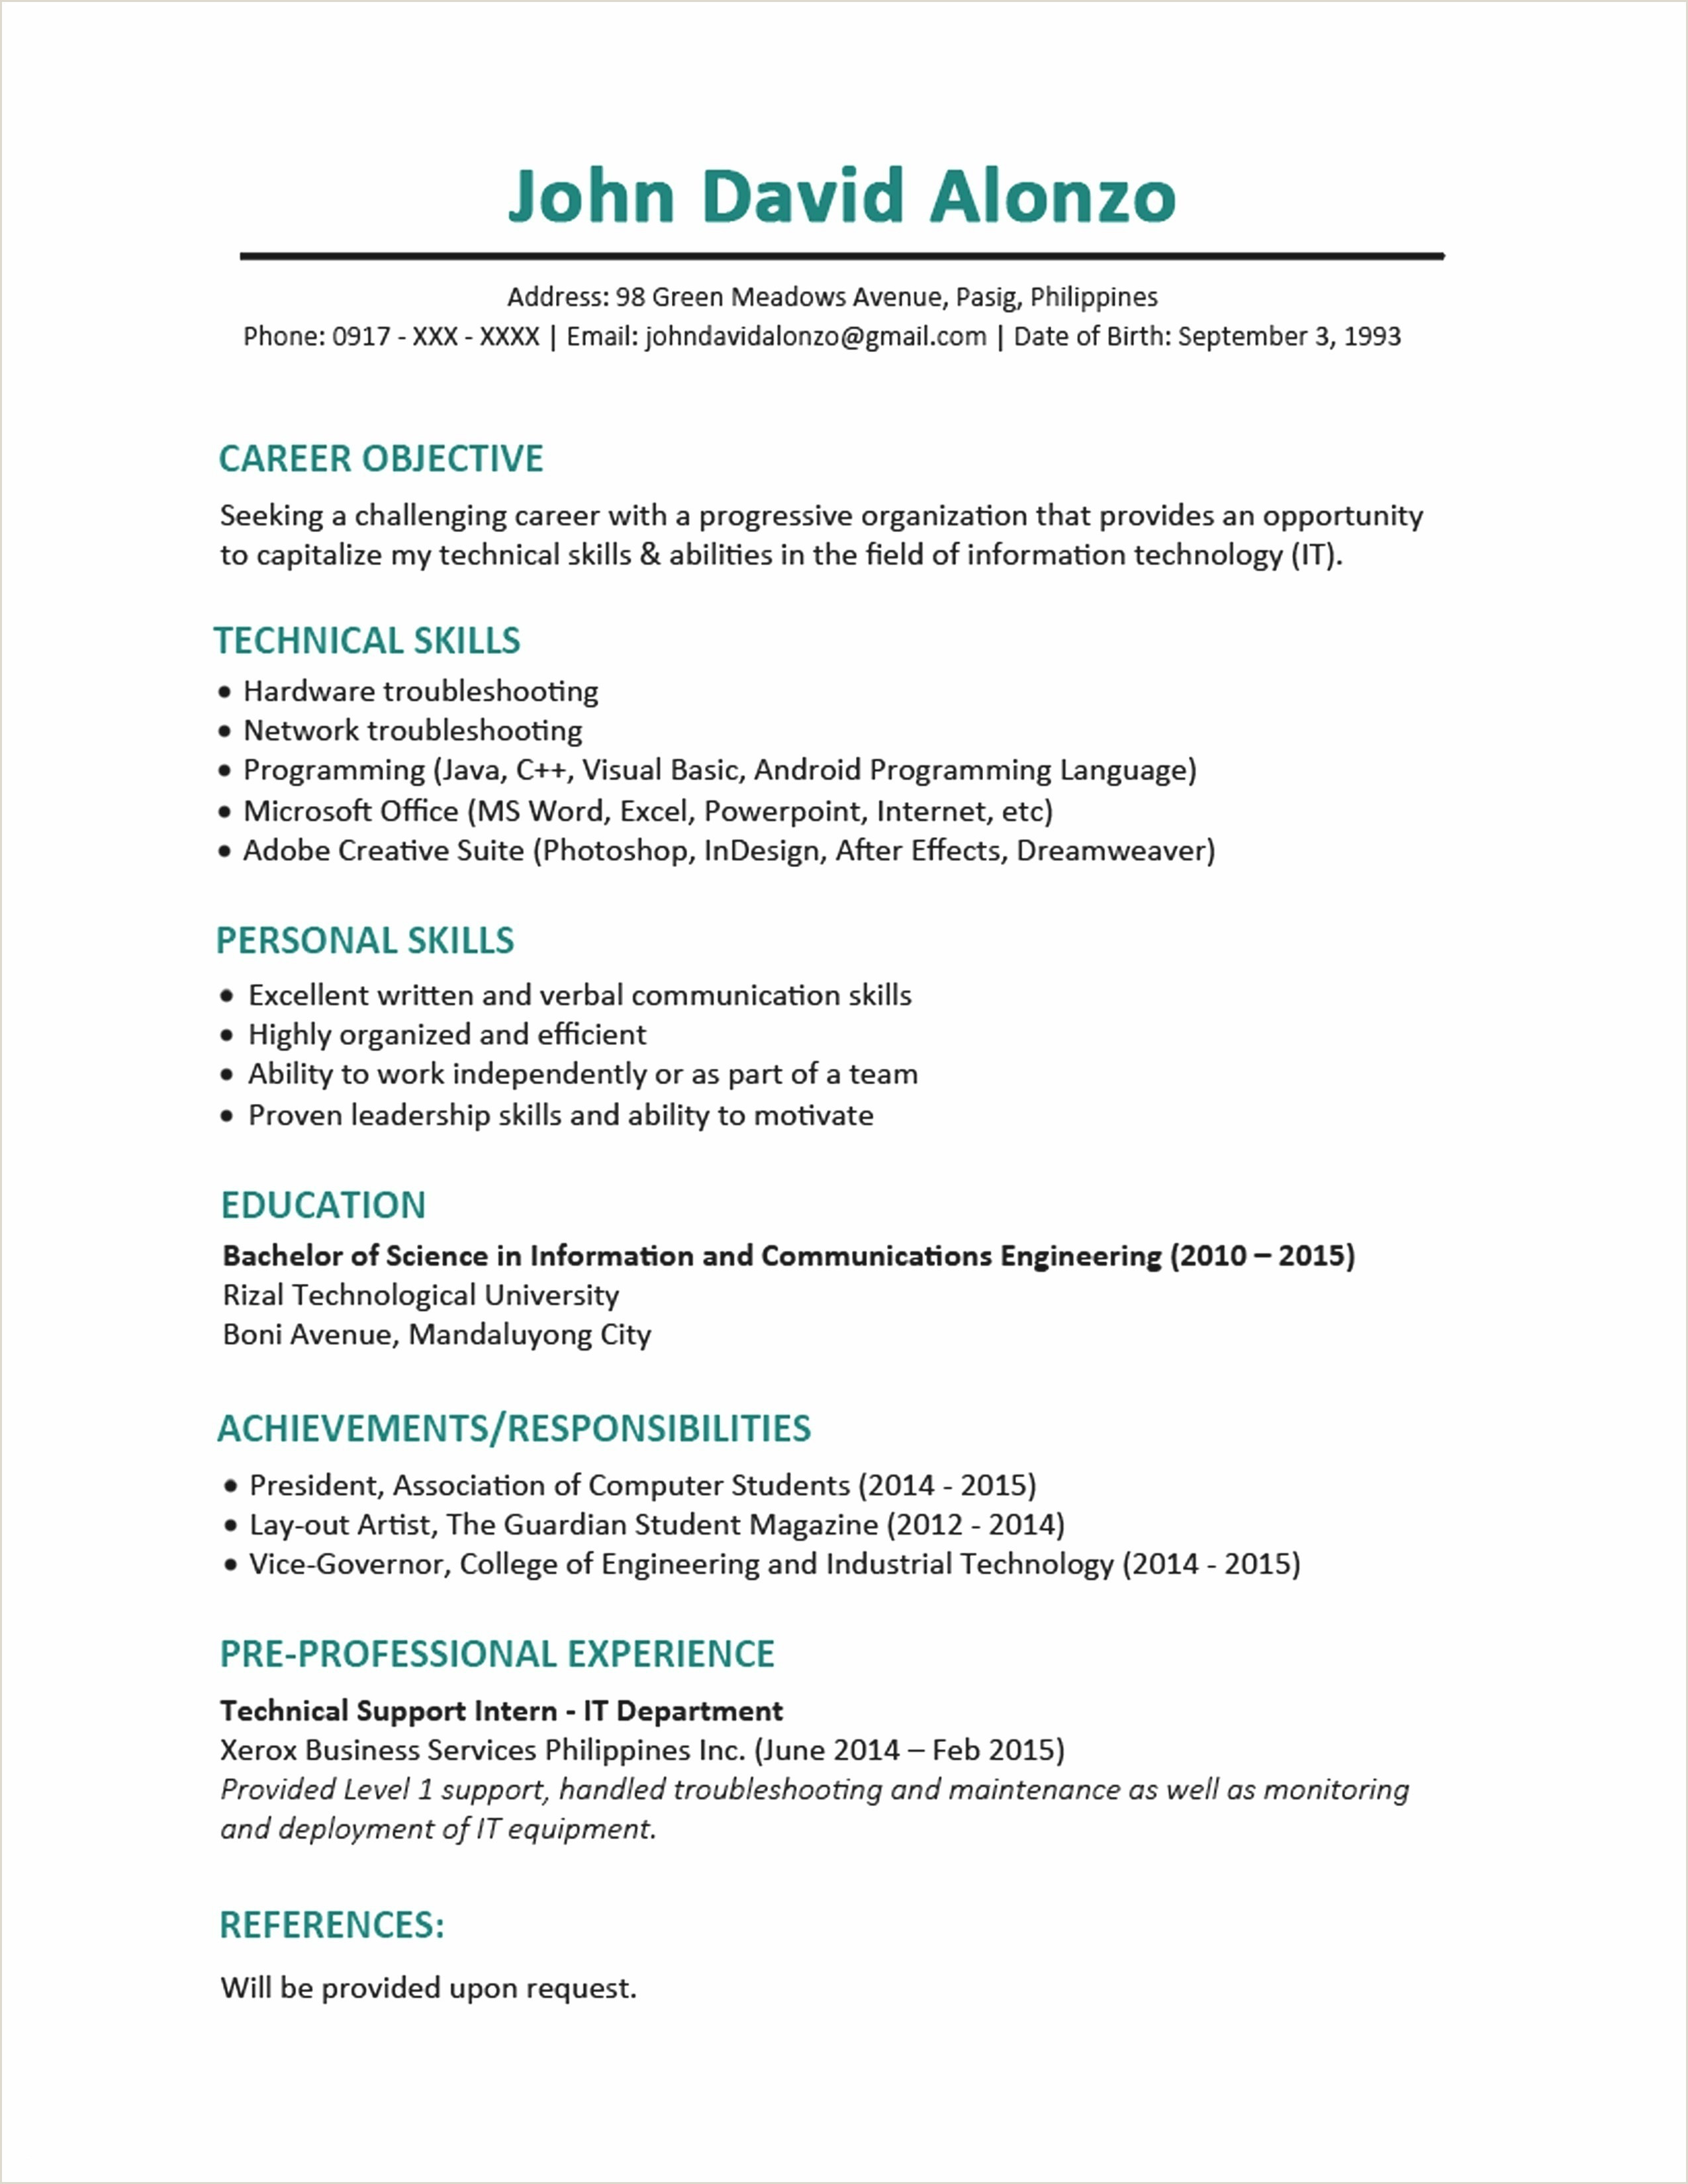 Resume format for First Job Beautiful Resume for J O B – 50ger